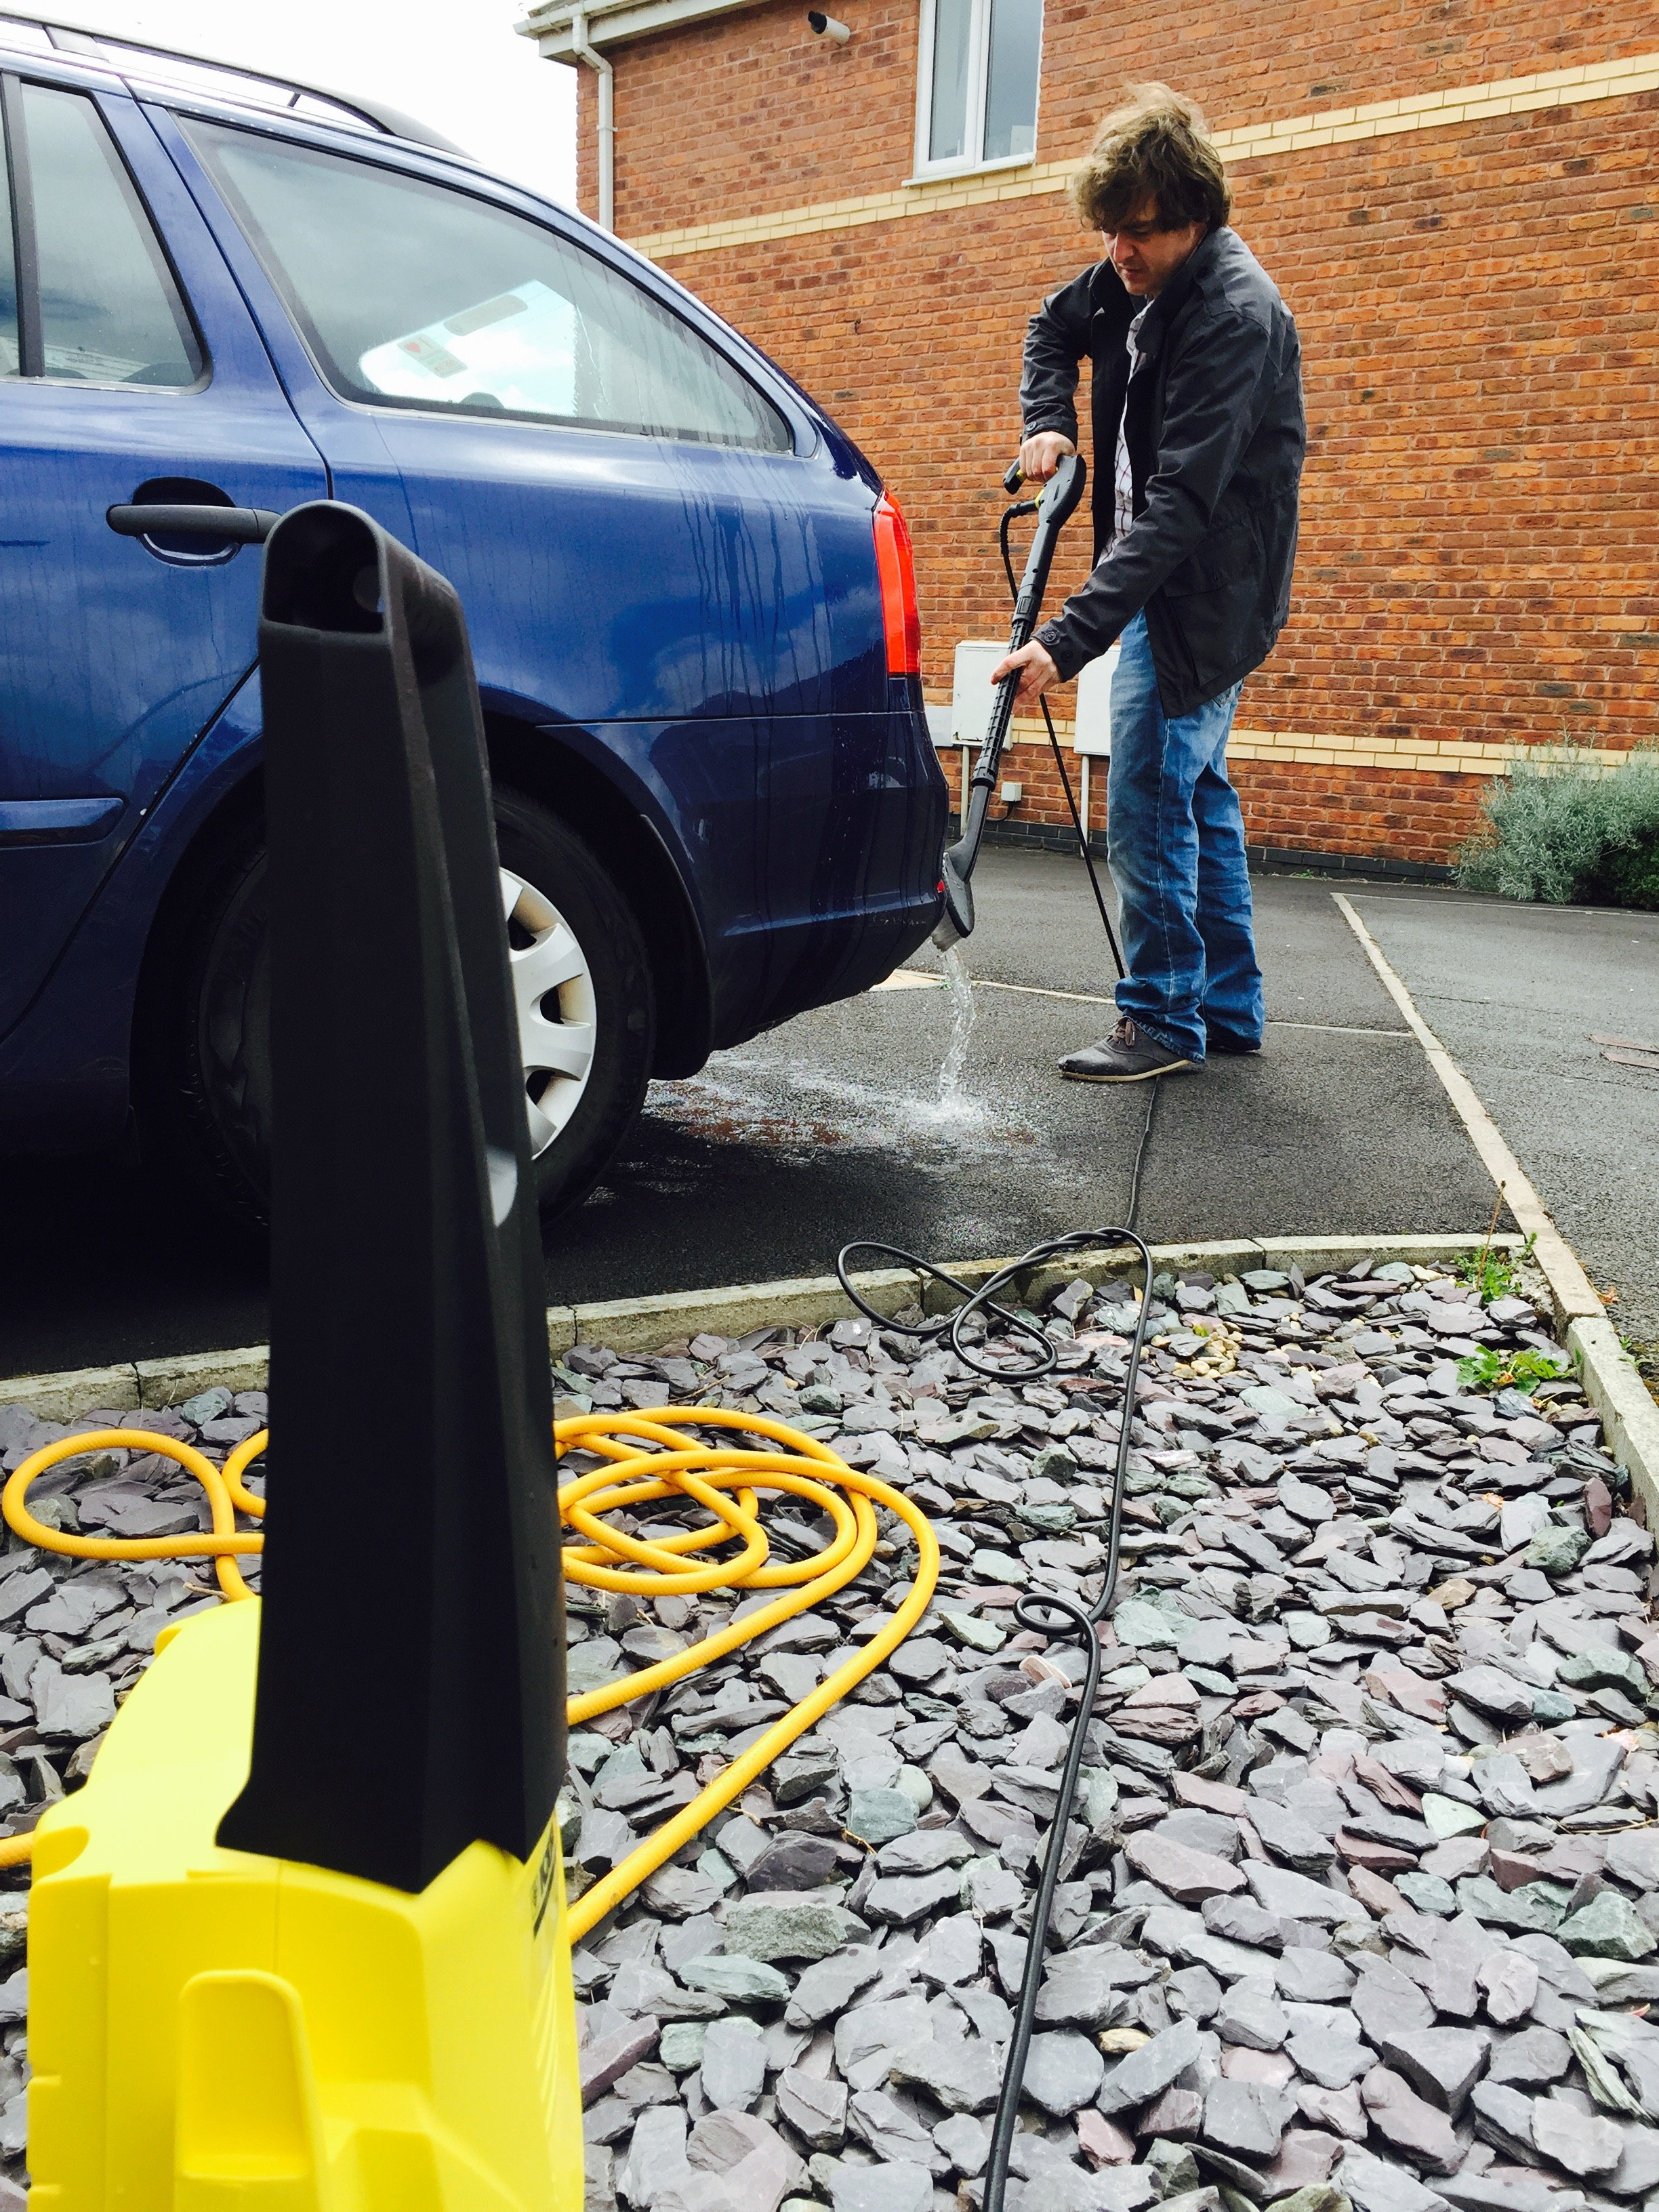 Review Karcher K2 Premium Home And Car Pressure Washer Daisies Pie